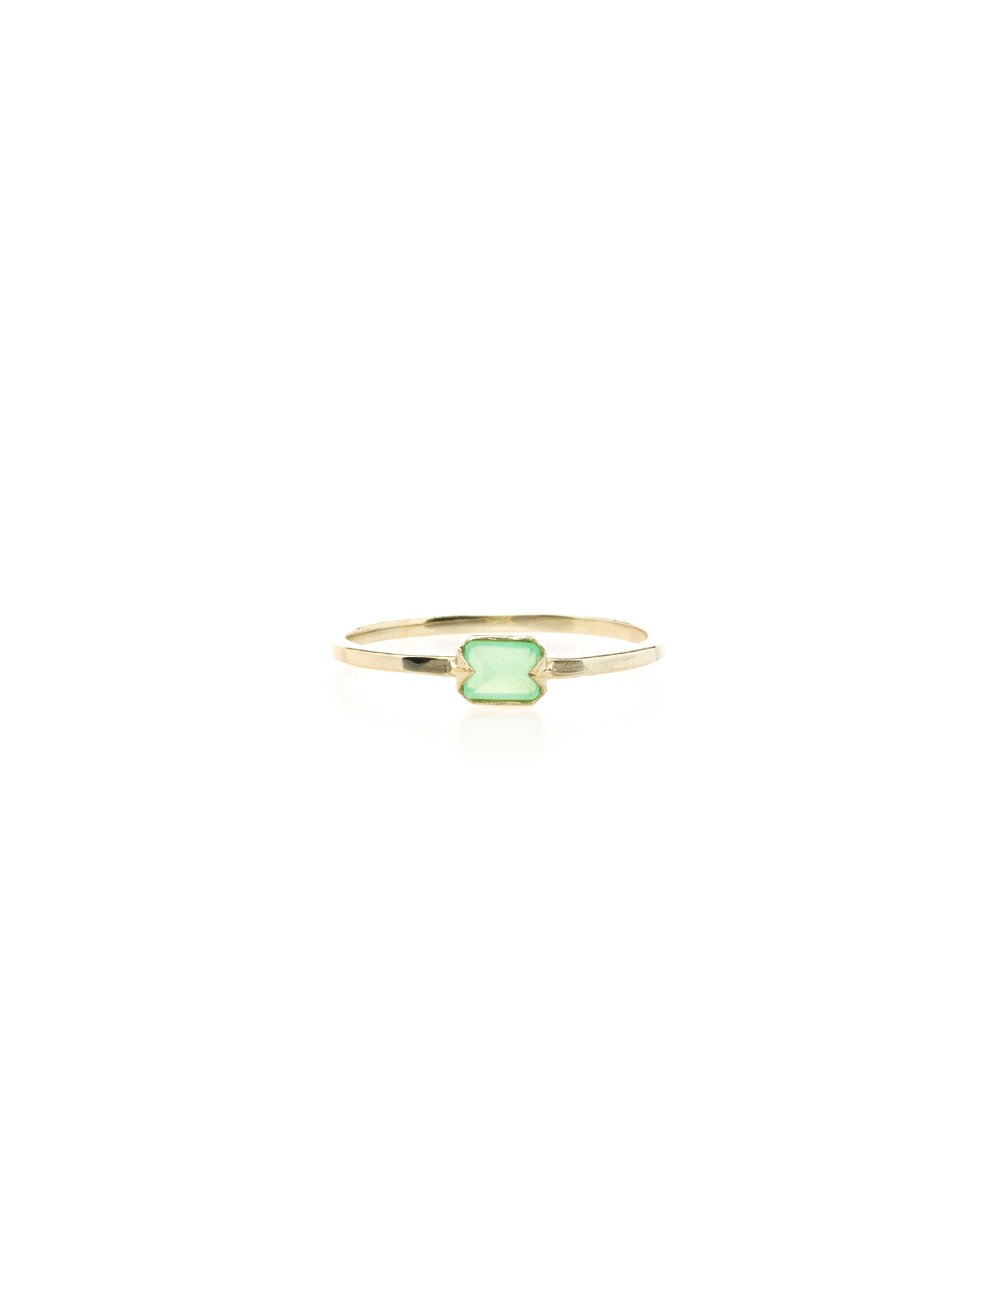 Far Out Ring- Chrysoprase